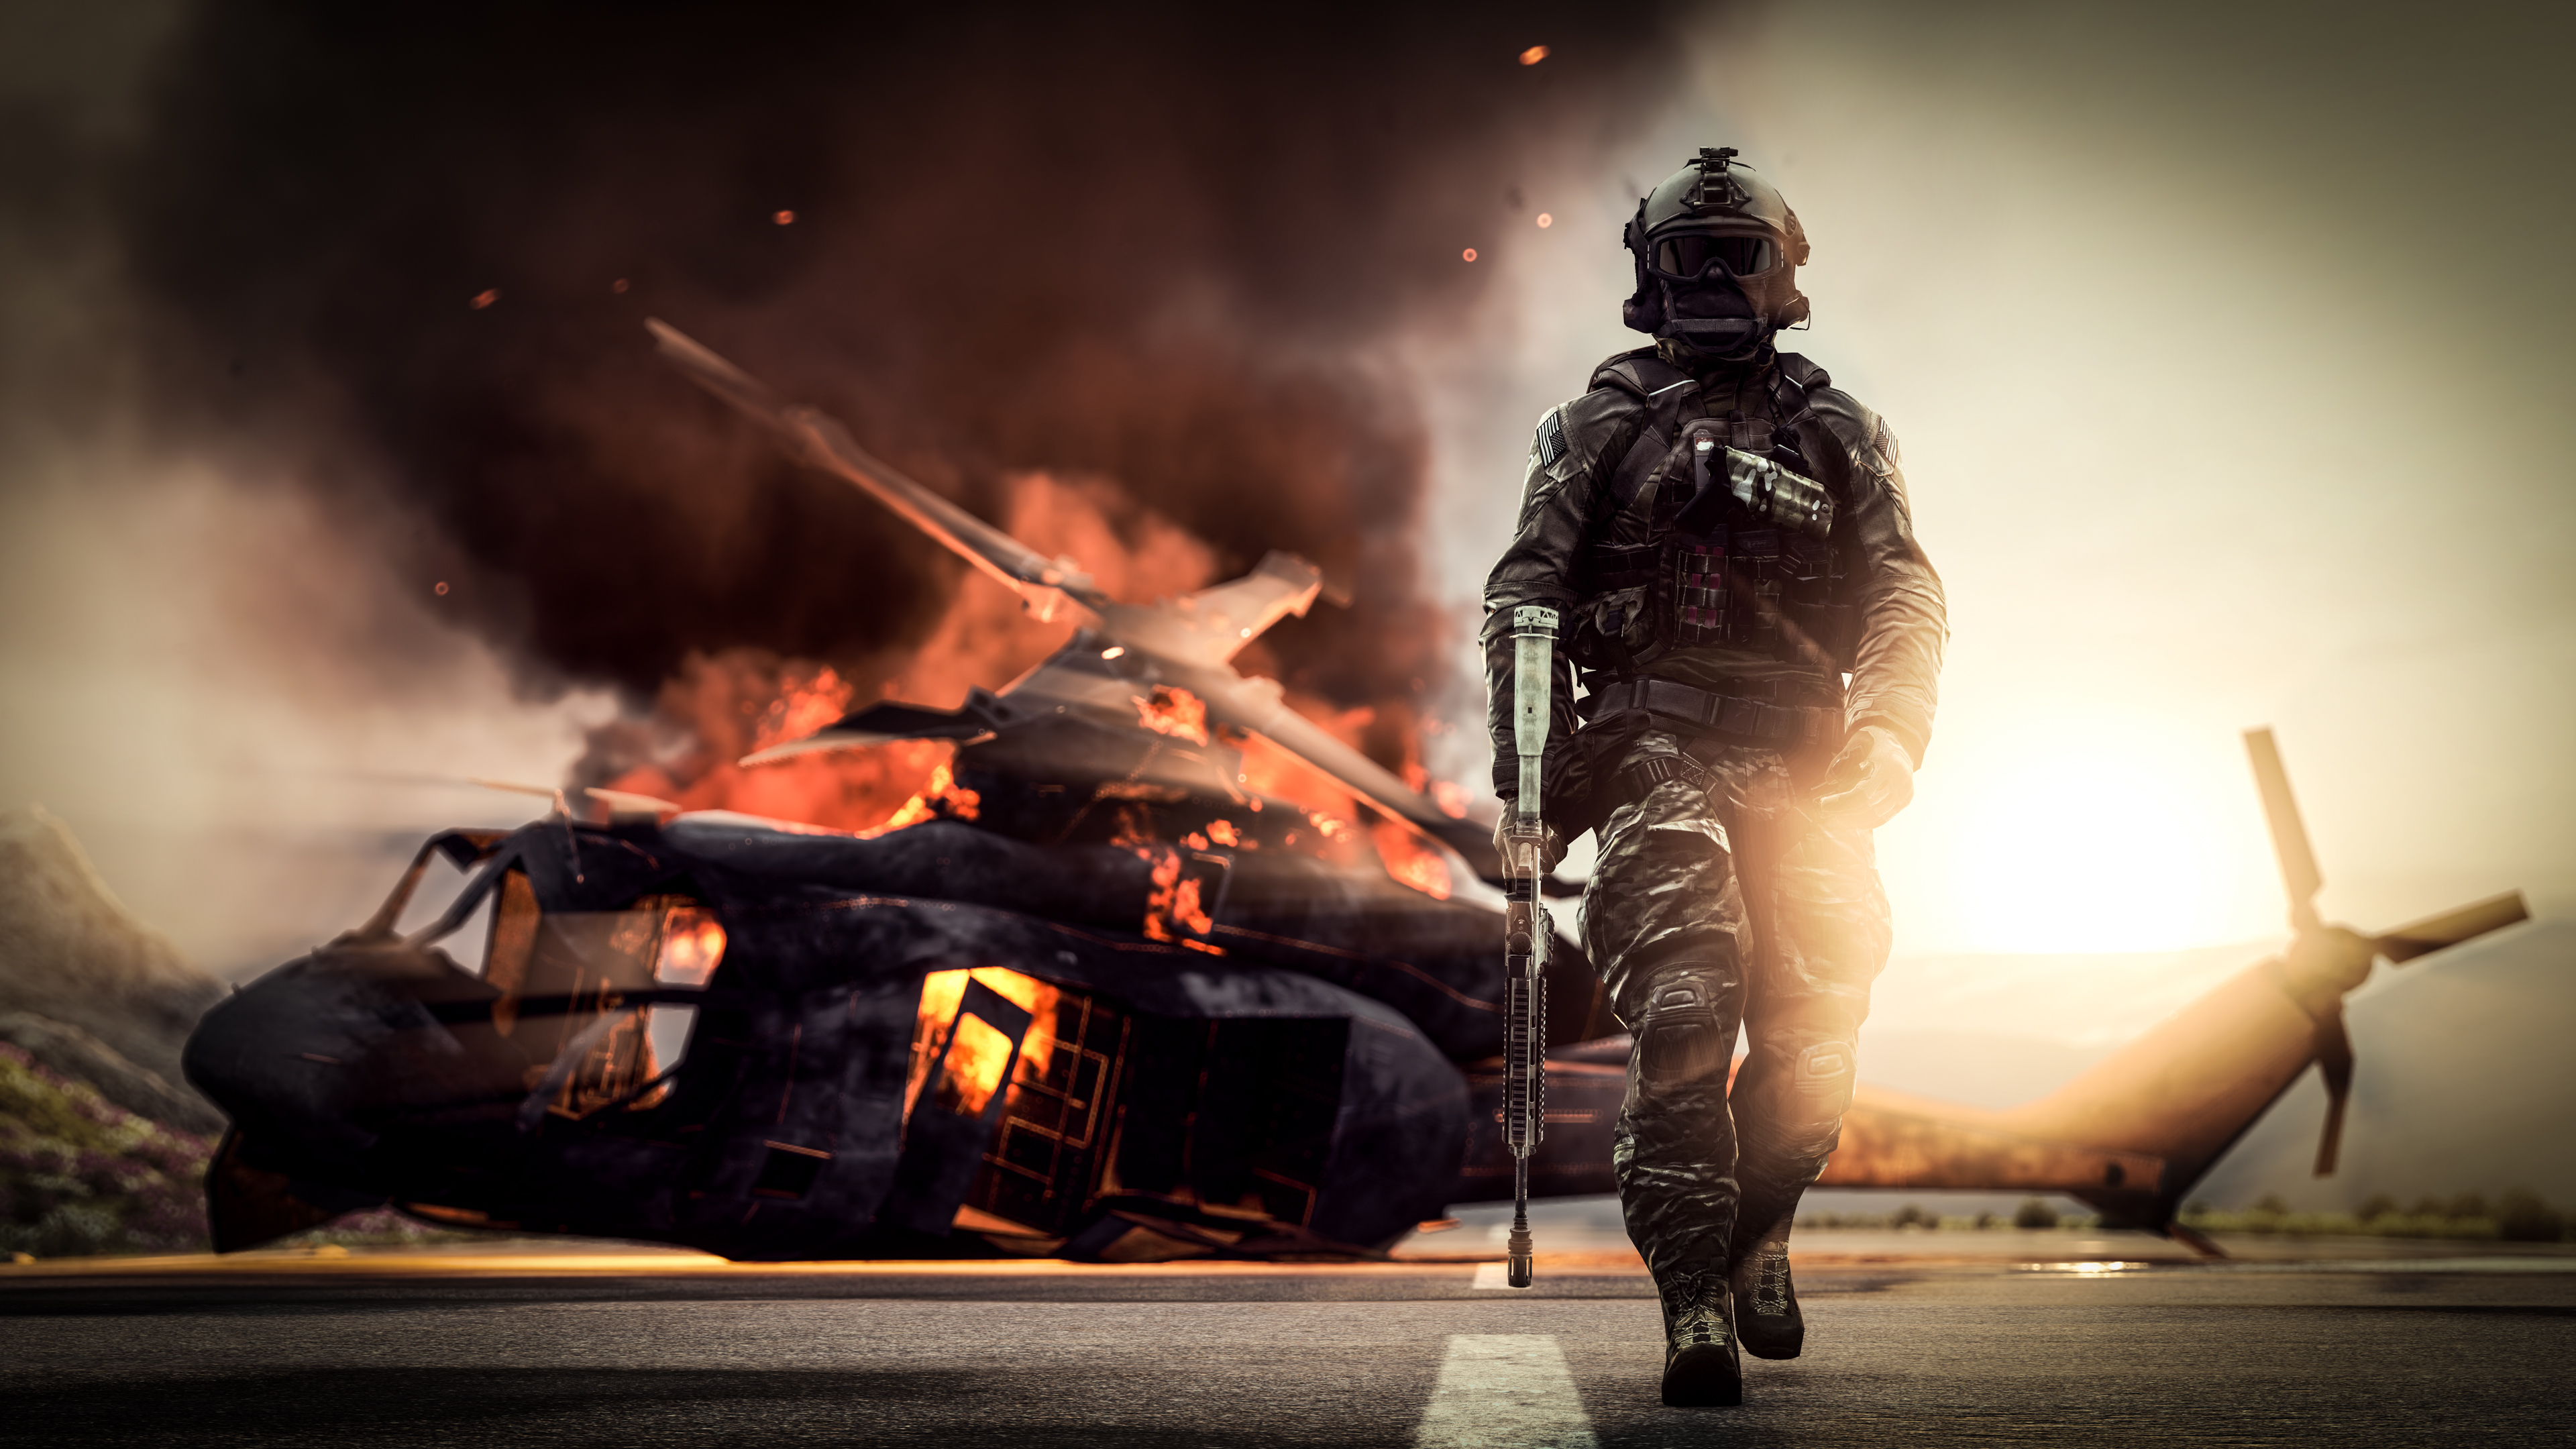 42 cool army wallpapers in hd for free download - HD 2560×1600